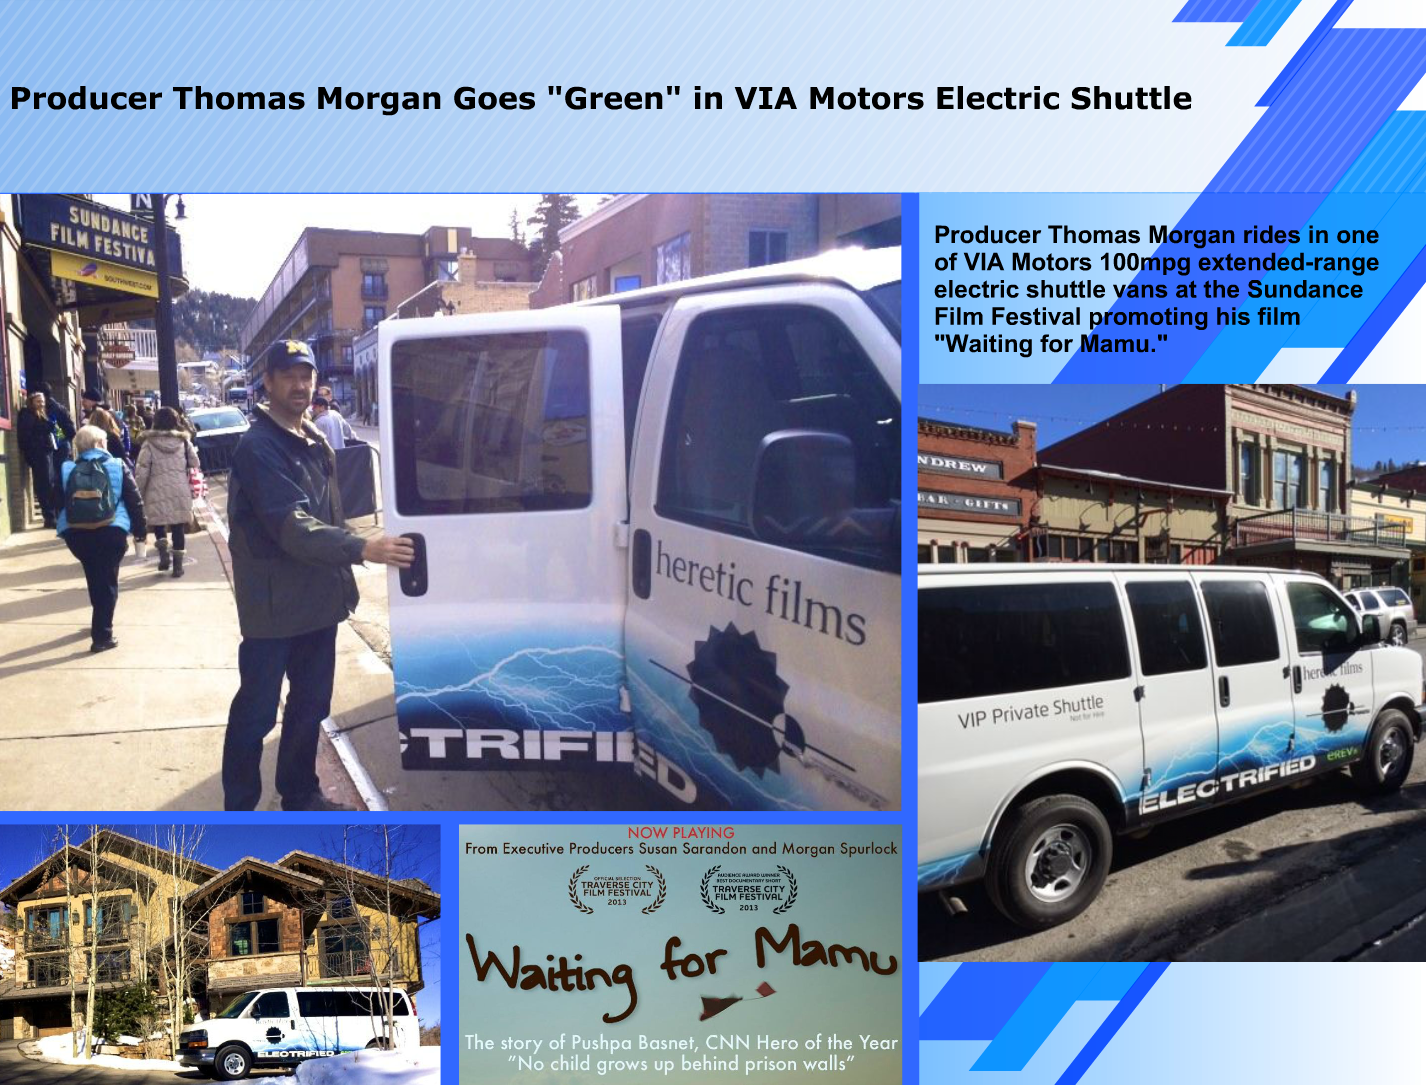 Thomas Morgan Goes Green By Using Via Motors 100mpg Extended Range Electric Penger